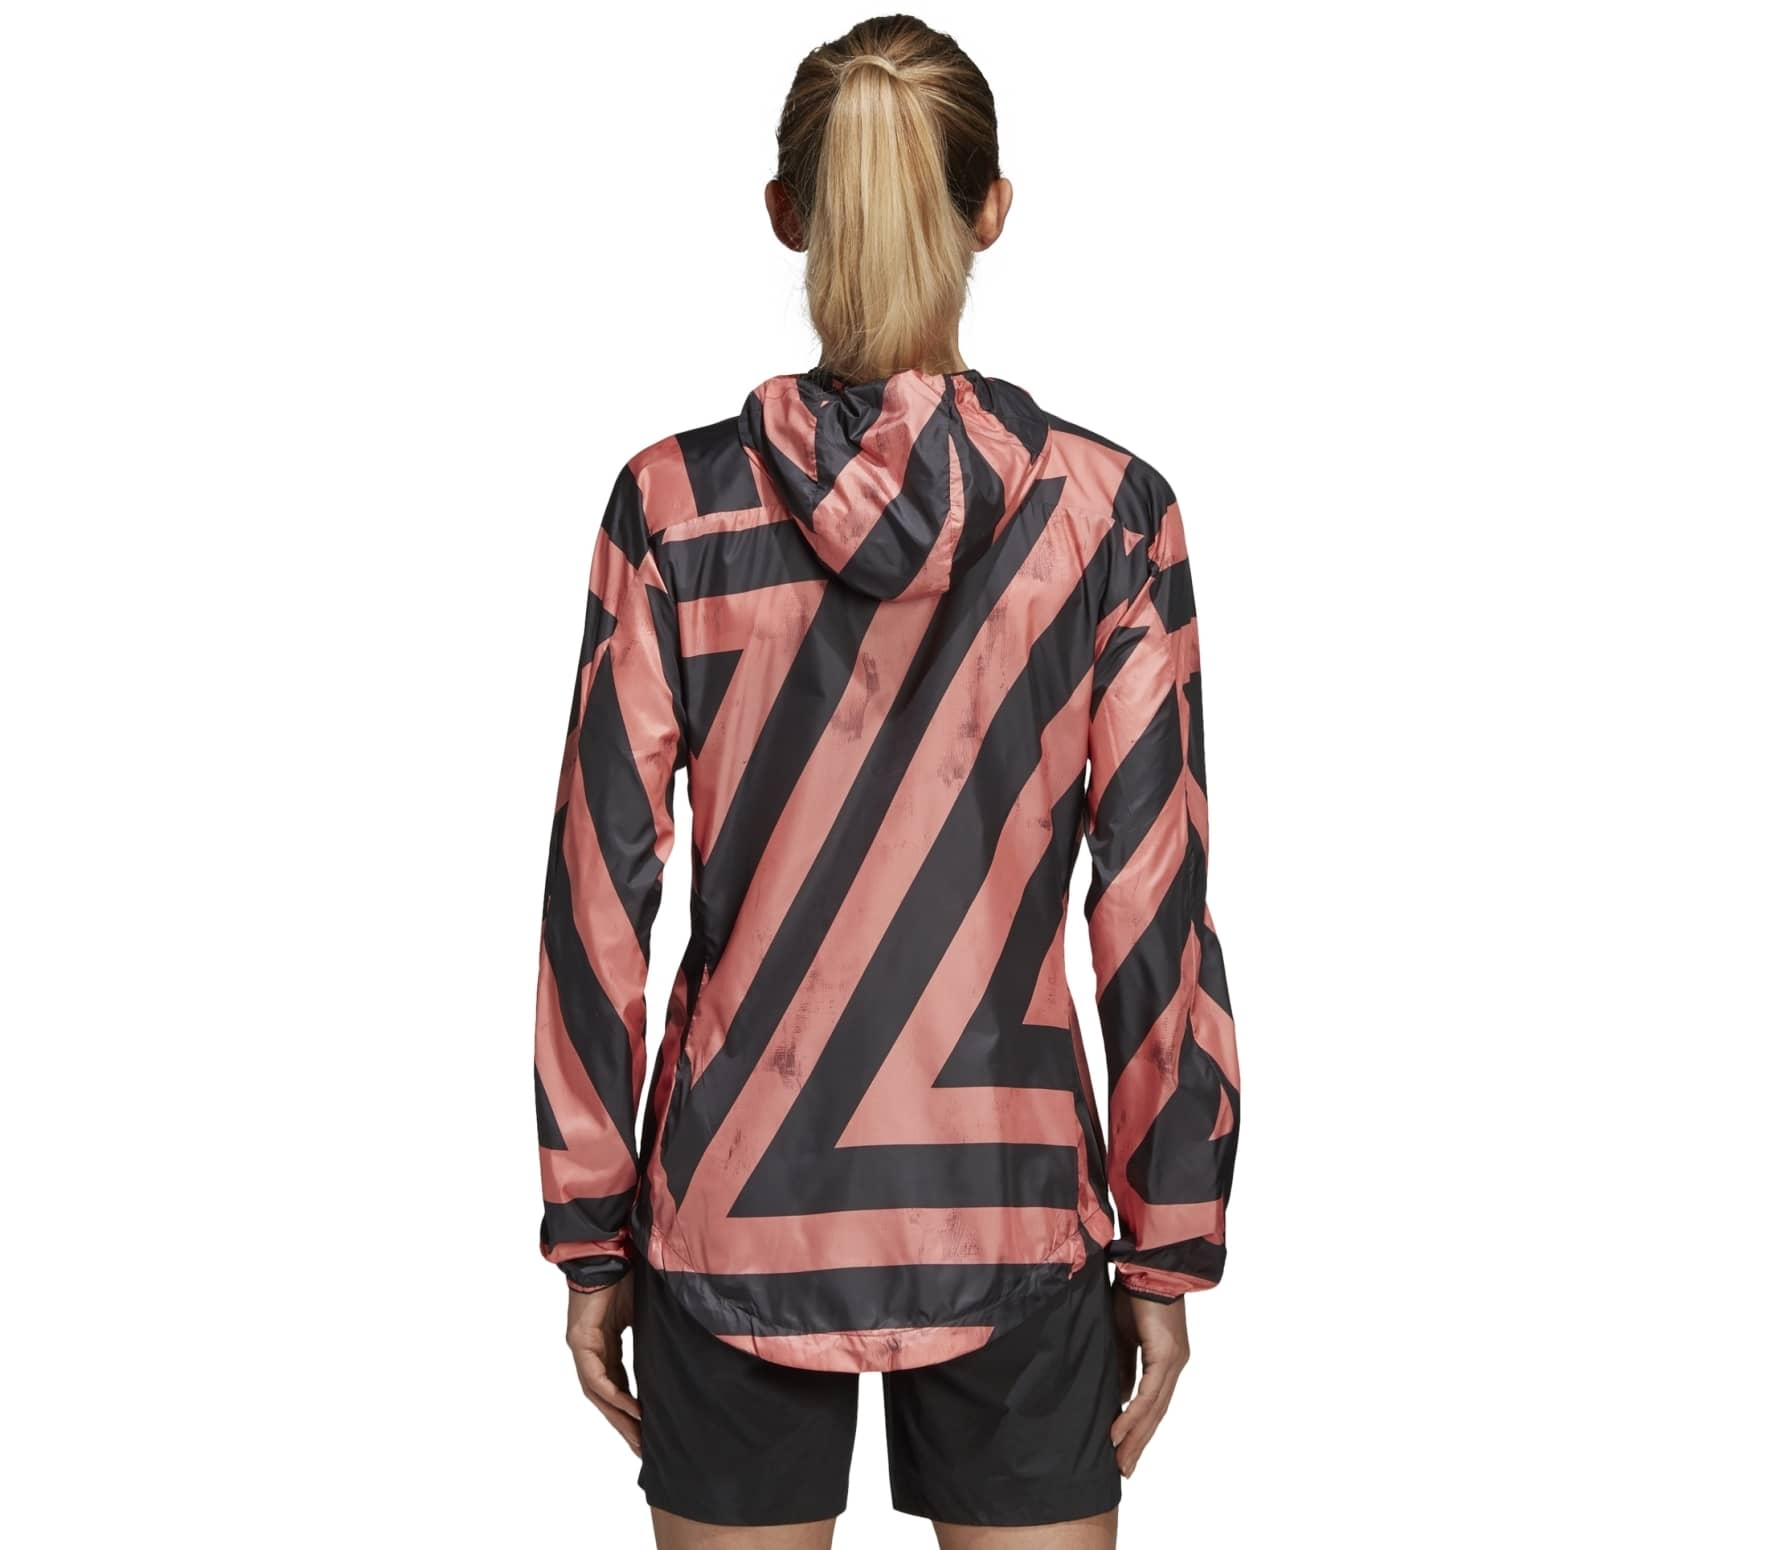 adidas agravic damen windbreaker schwarz orange im online shop von keller sports kaufen. Black Bedroom Furniture Sets. Home Design Ideas